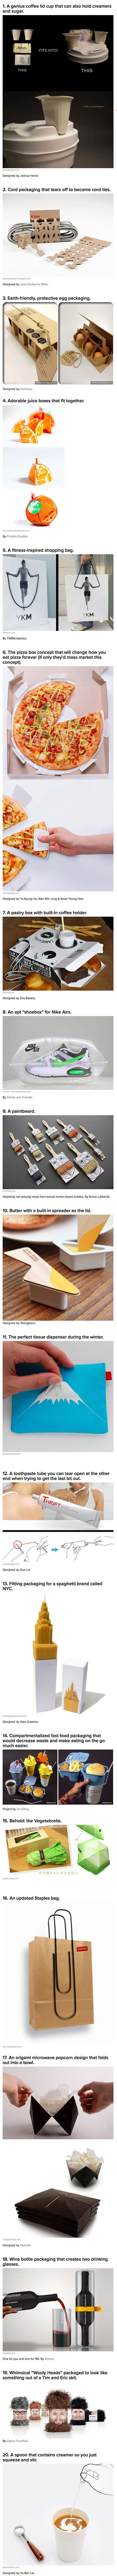 20 mind-blowing packaging designs. Packaging: it's a necessary evil. So it may as well be clever.